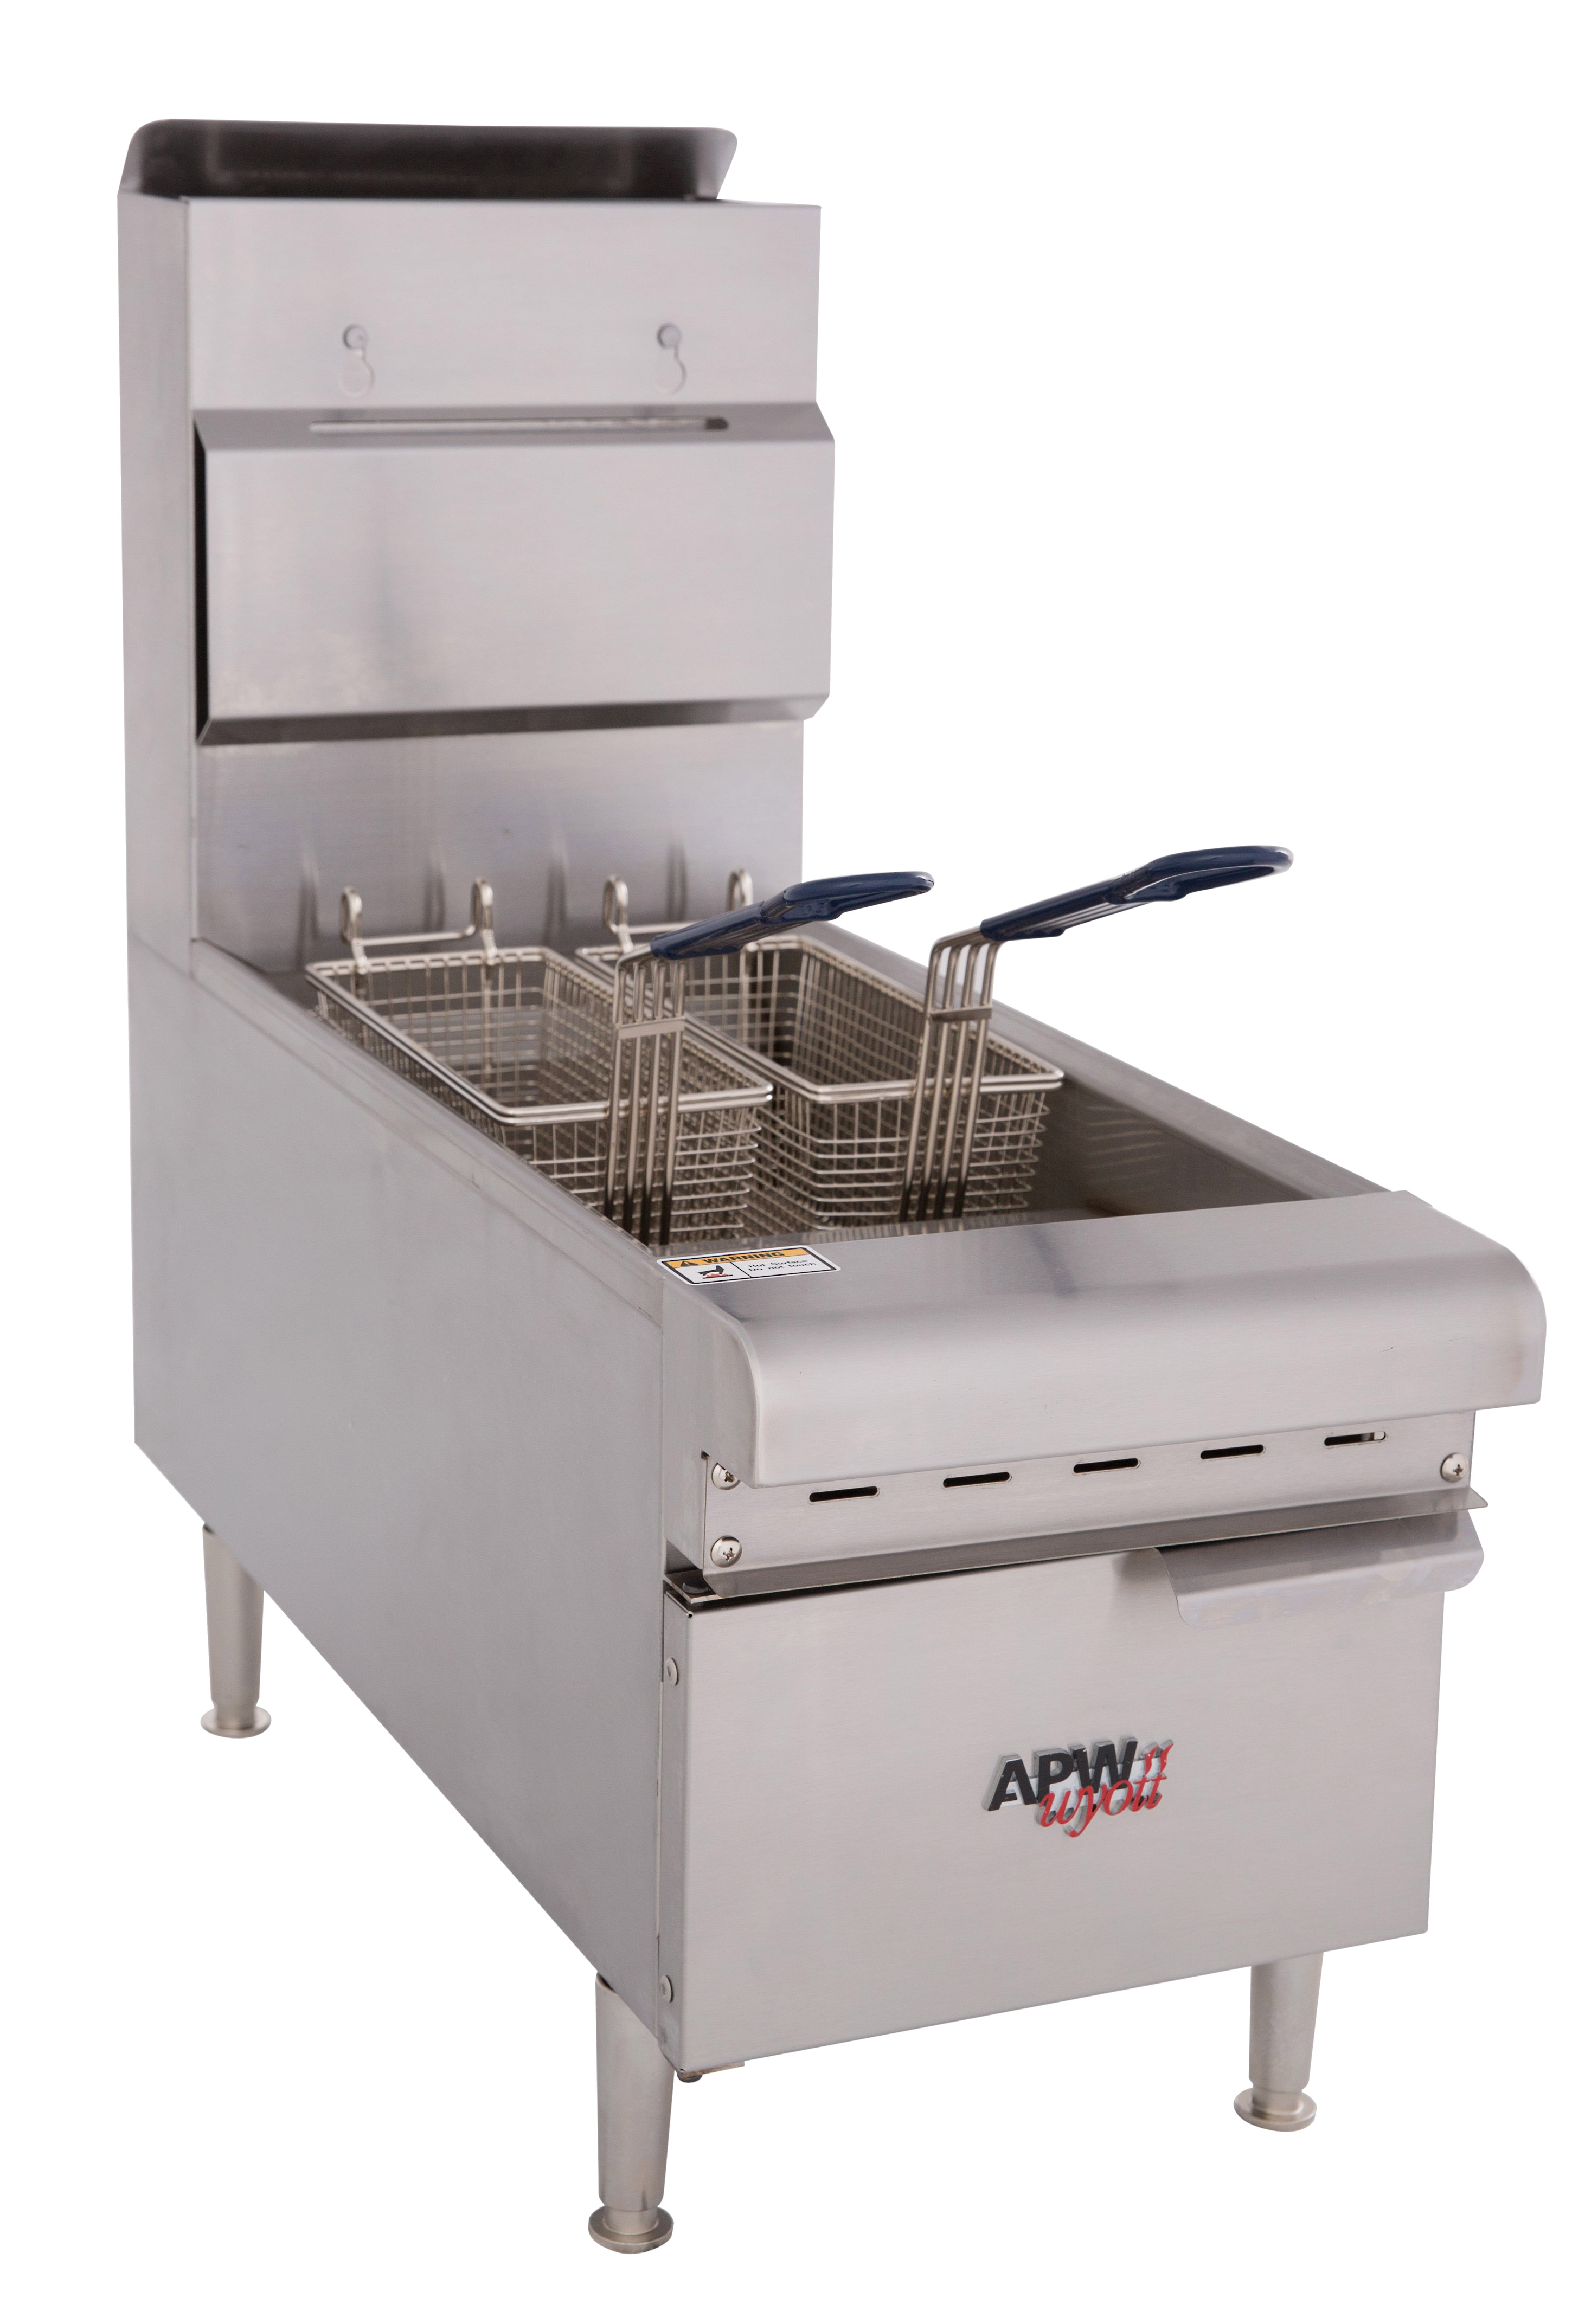 APW Wyott APW-F15C fryer, gas, countertop, full pot